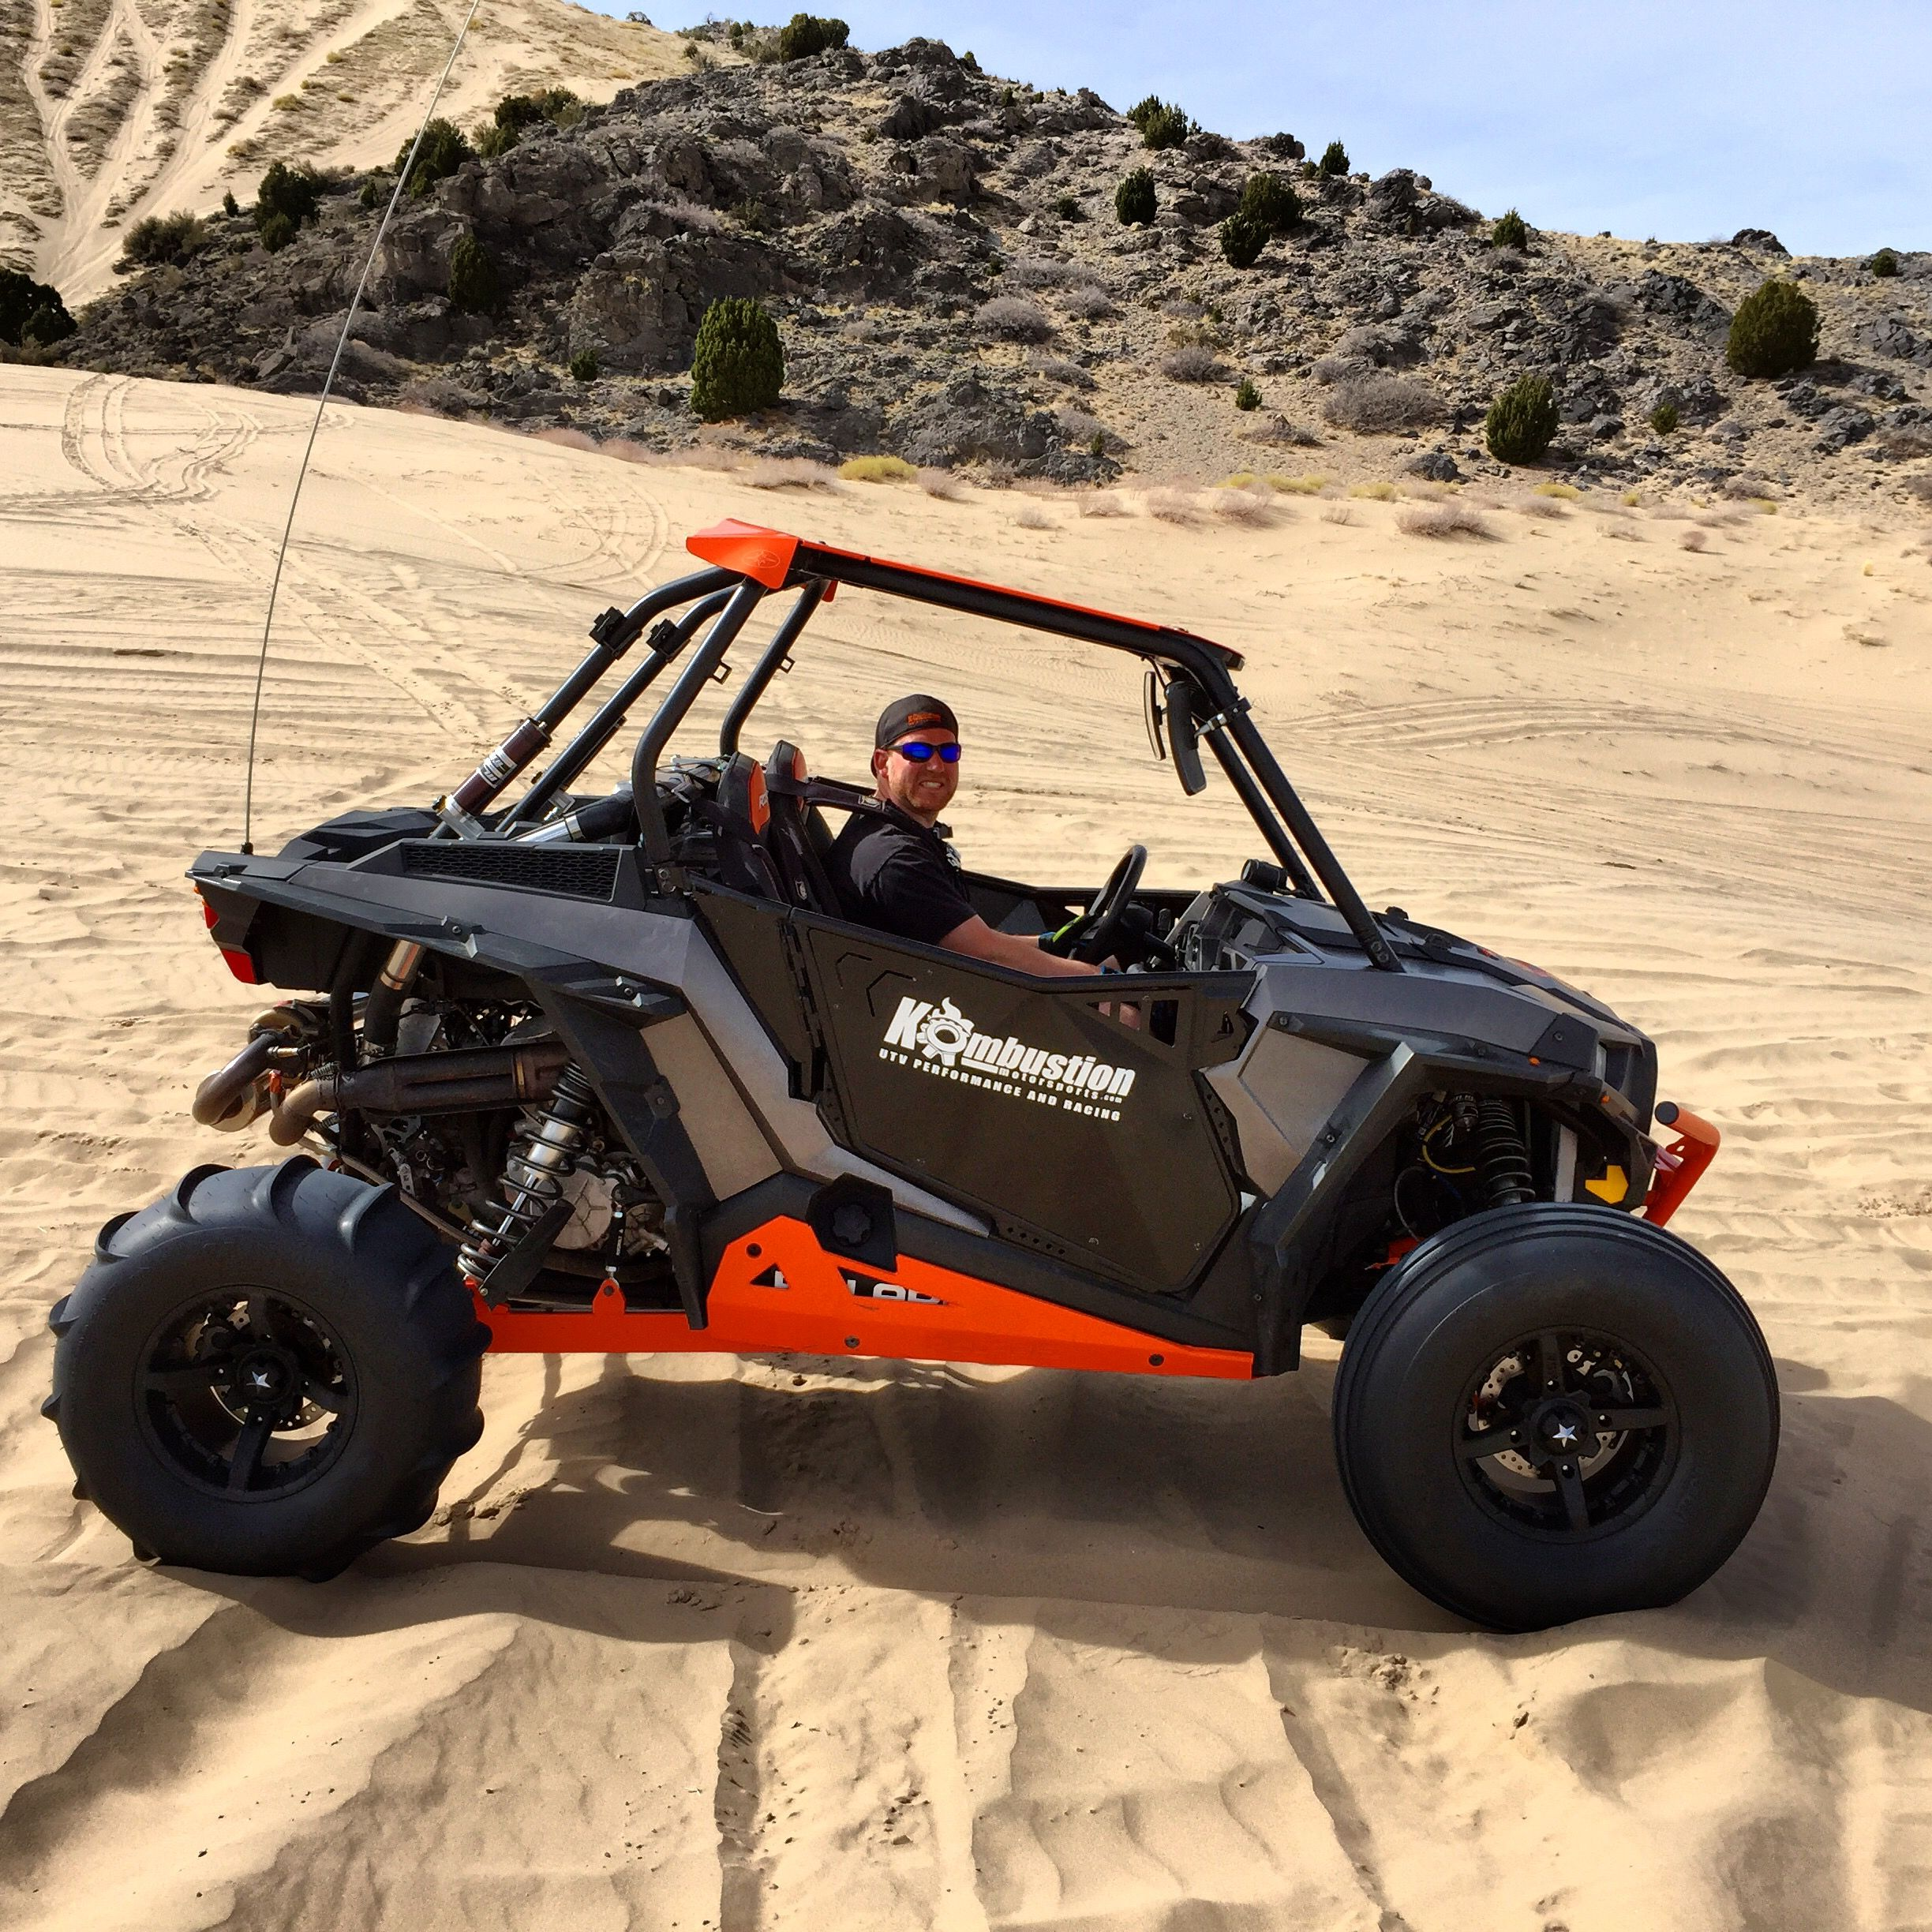 Turbo Rzr Out Having Fun Atv Quads Rzr Polaris Rzr 1000